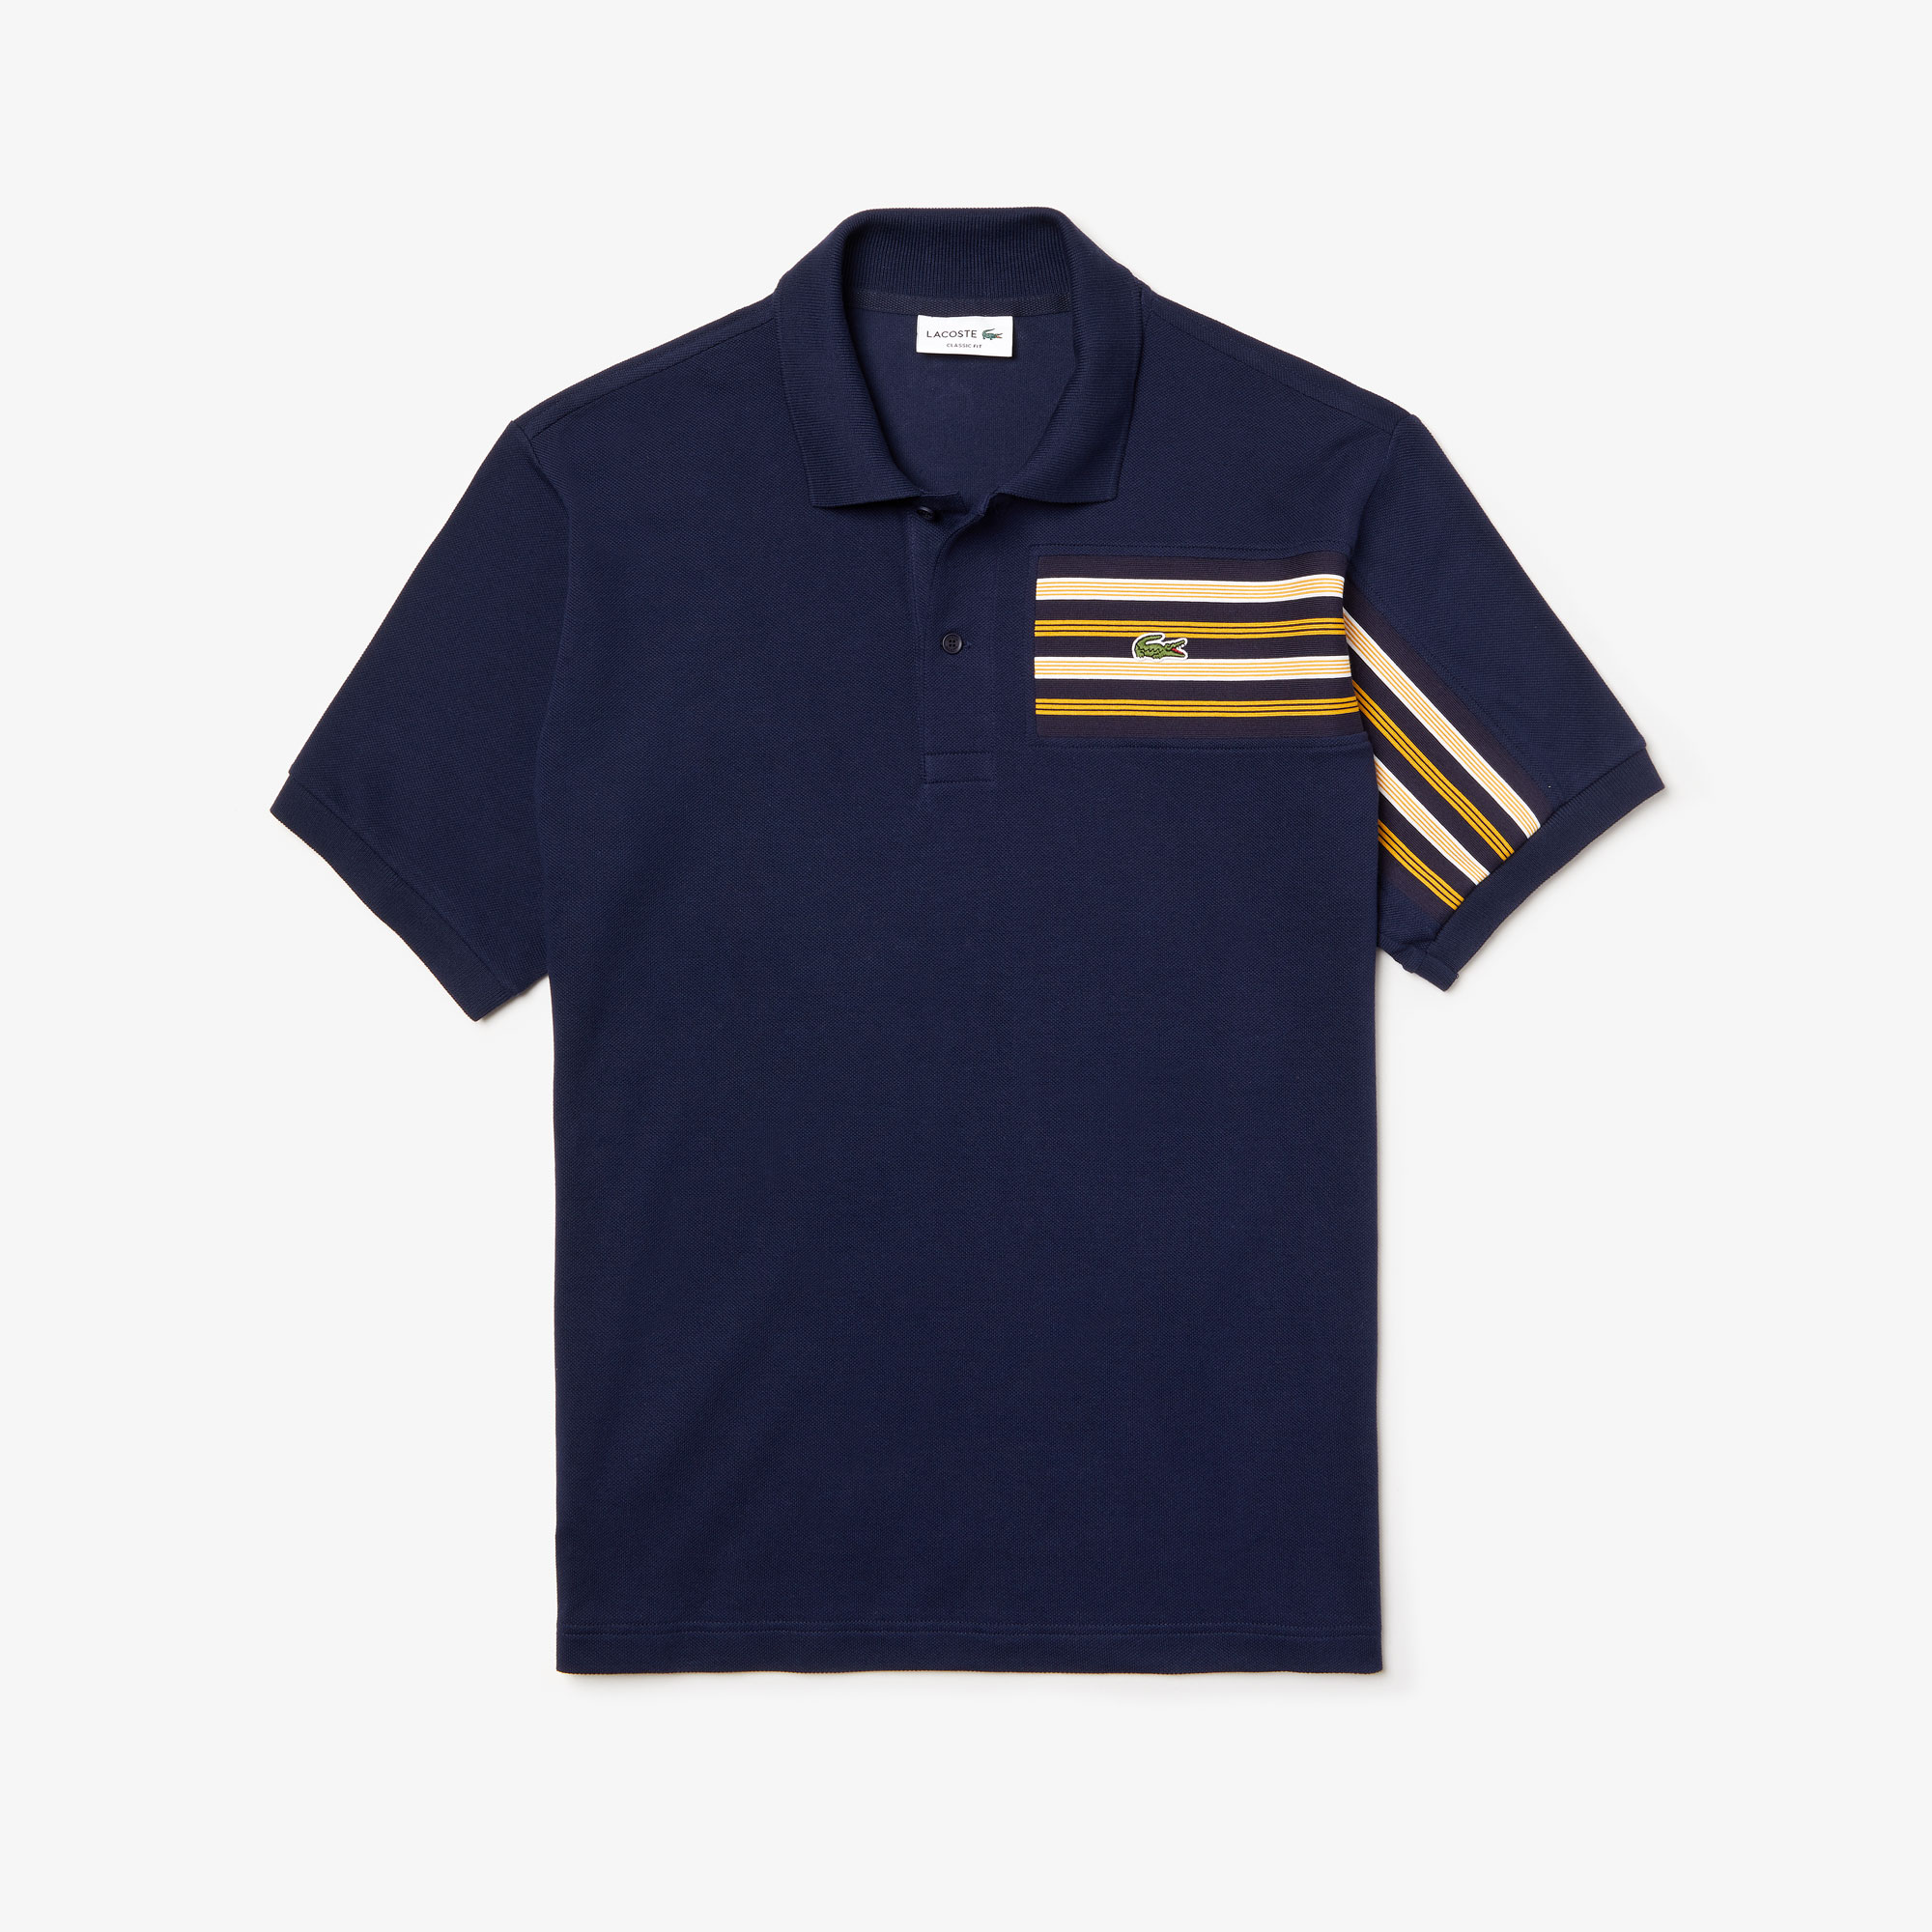 Men's Lacoste L.12.12 Striped Panel Cotton Piqué Polo Shirt